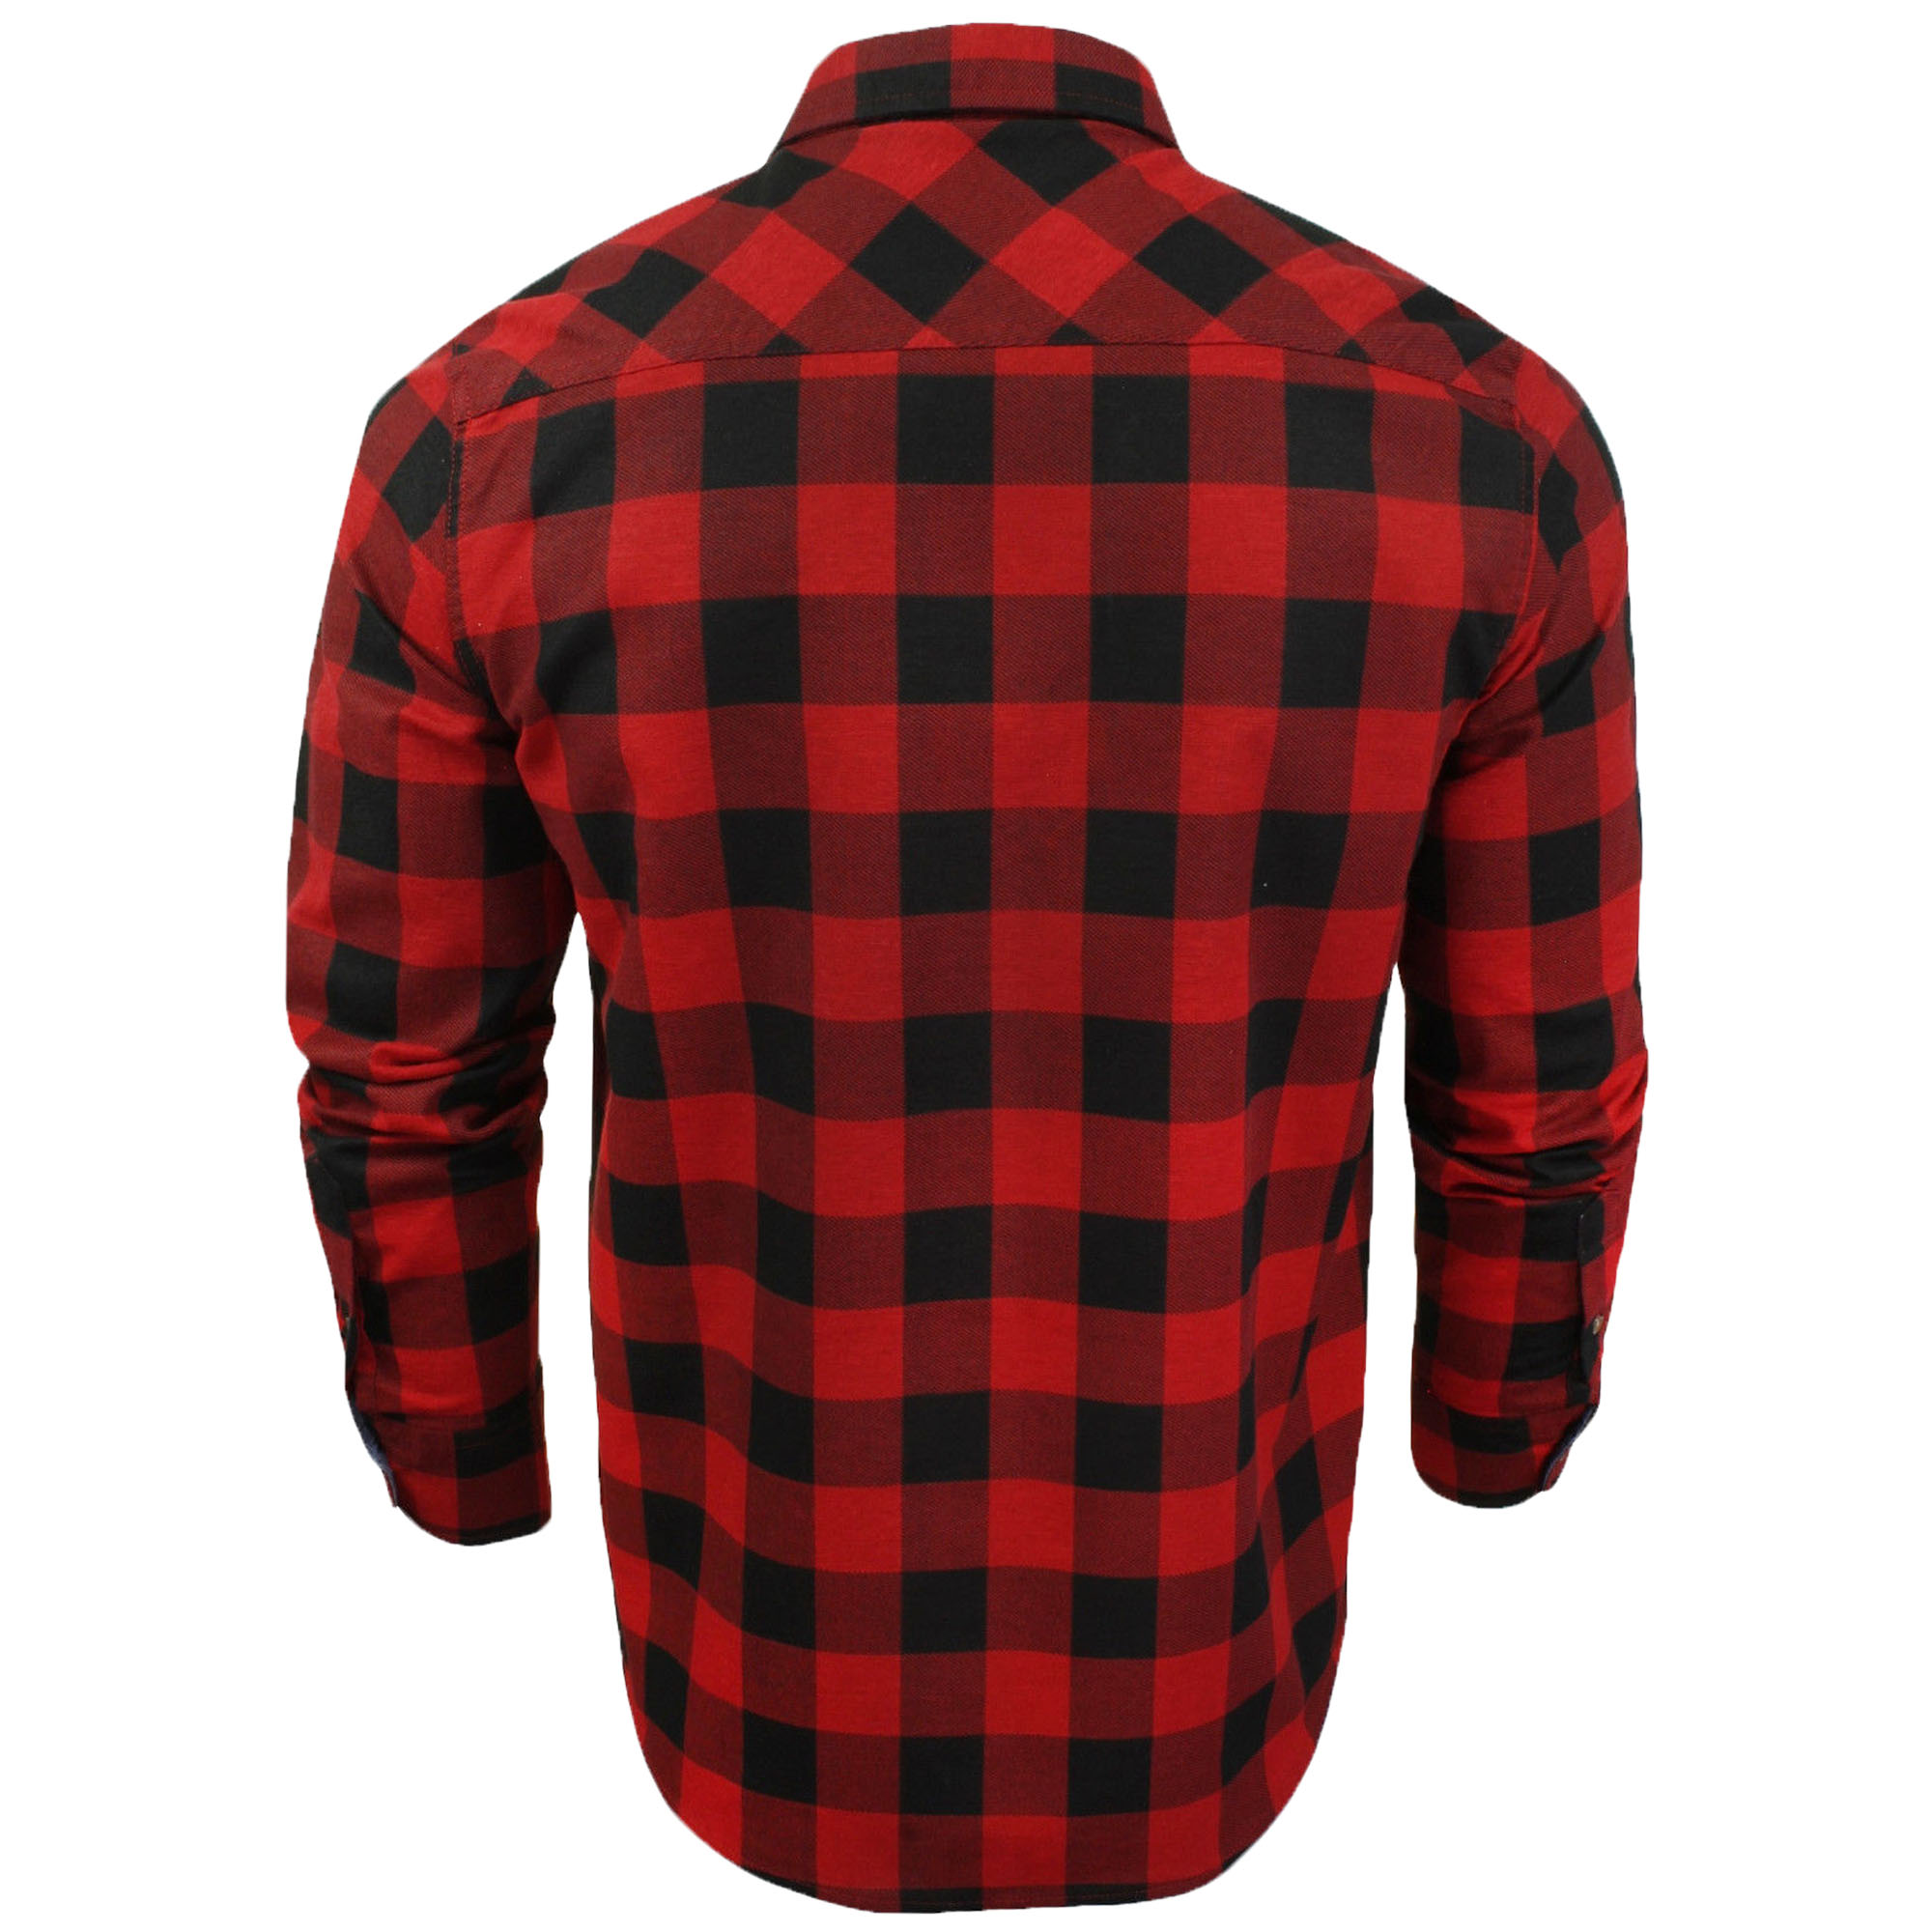 Mens-Checked-Tartan-Long-Sleeved-Collared-Shirt-By-Brave-Soul miniatuur 12